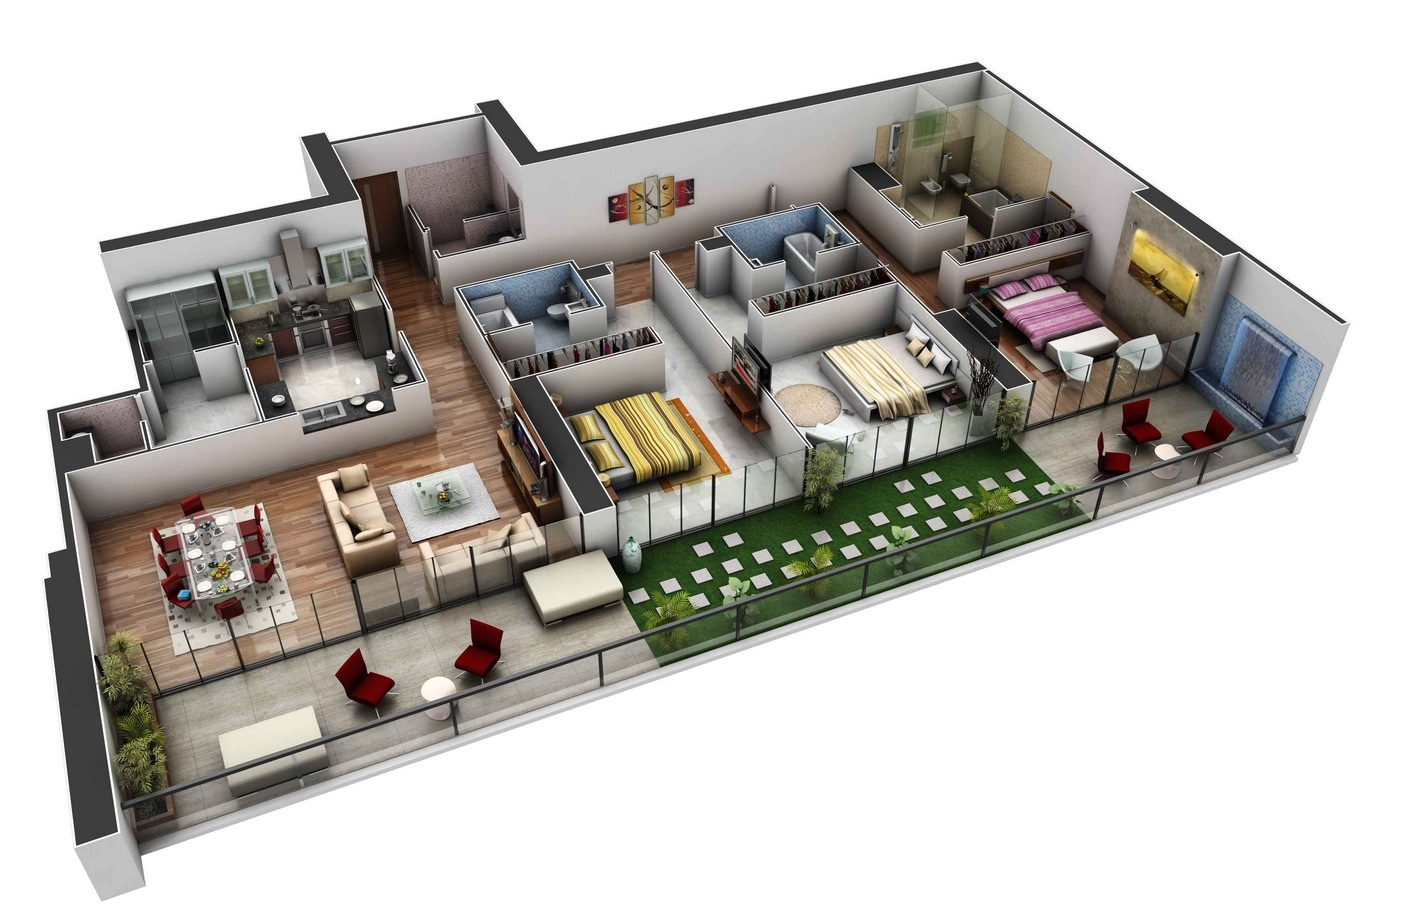 3 bedroom apartmenthouse plans - Three Bedroom House